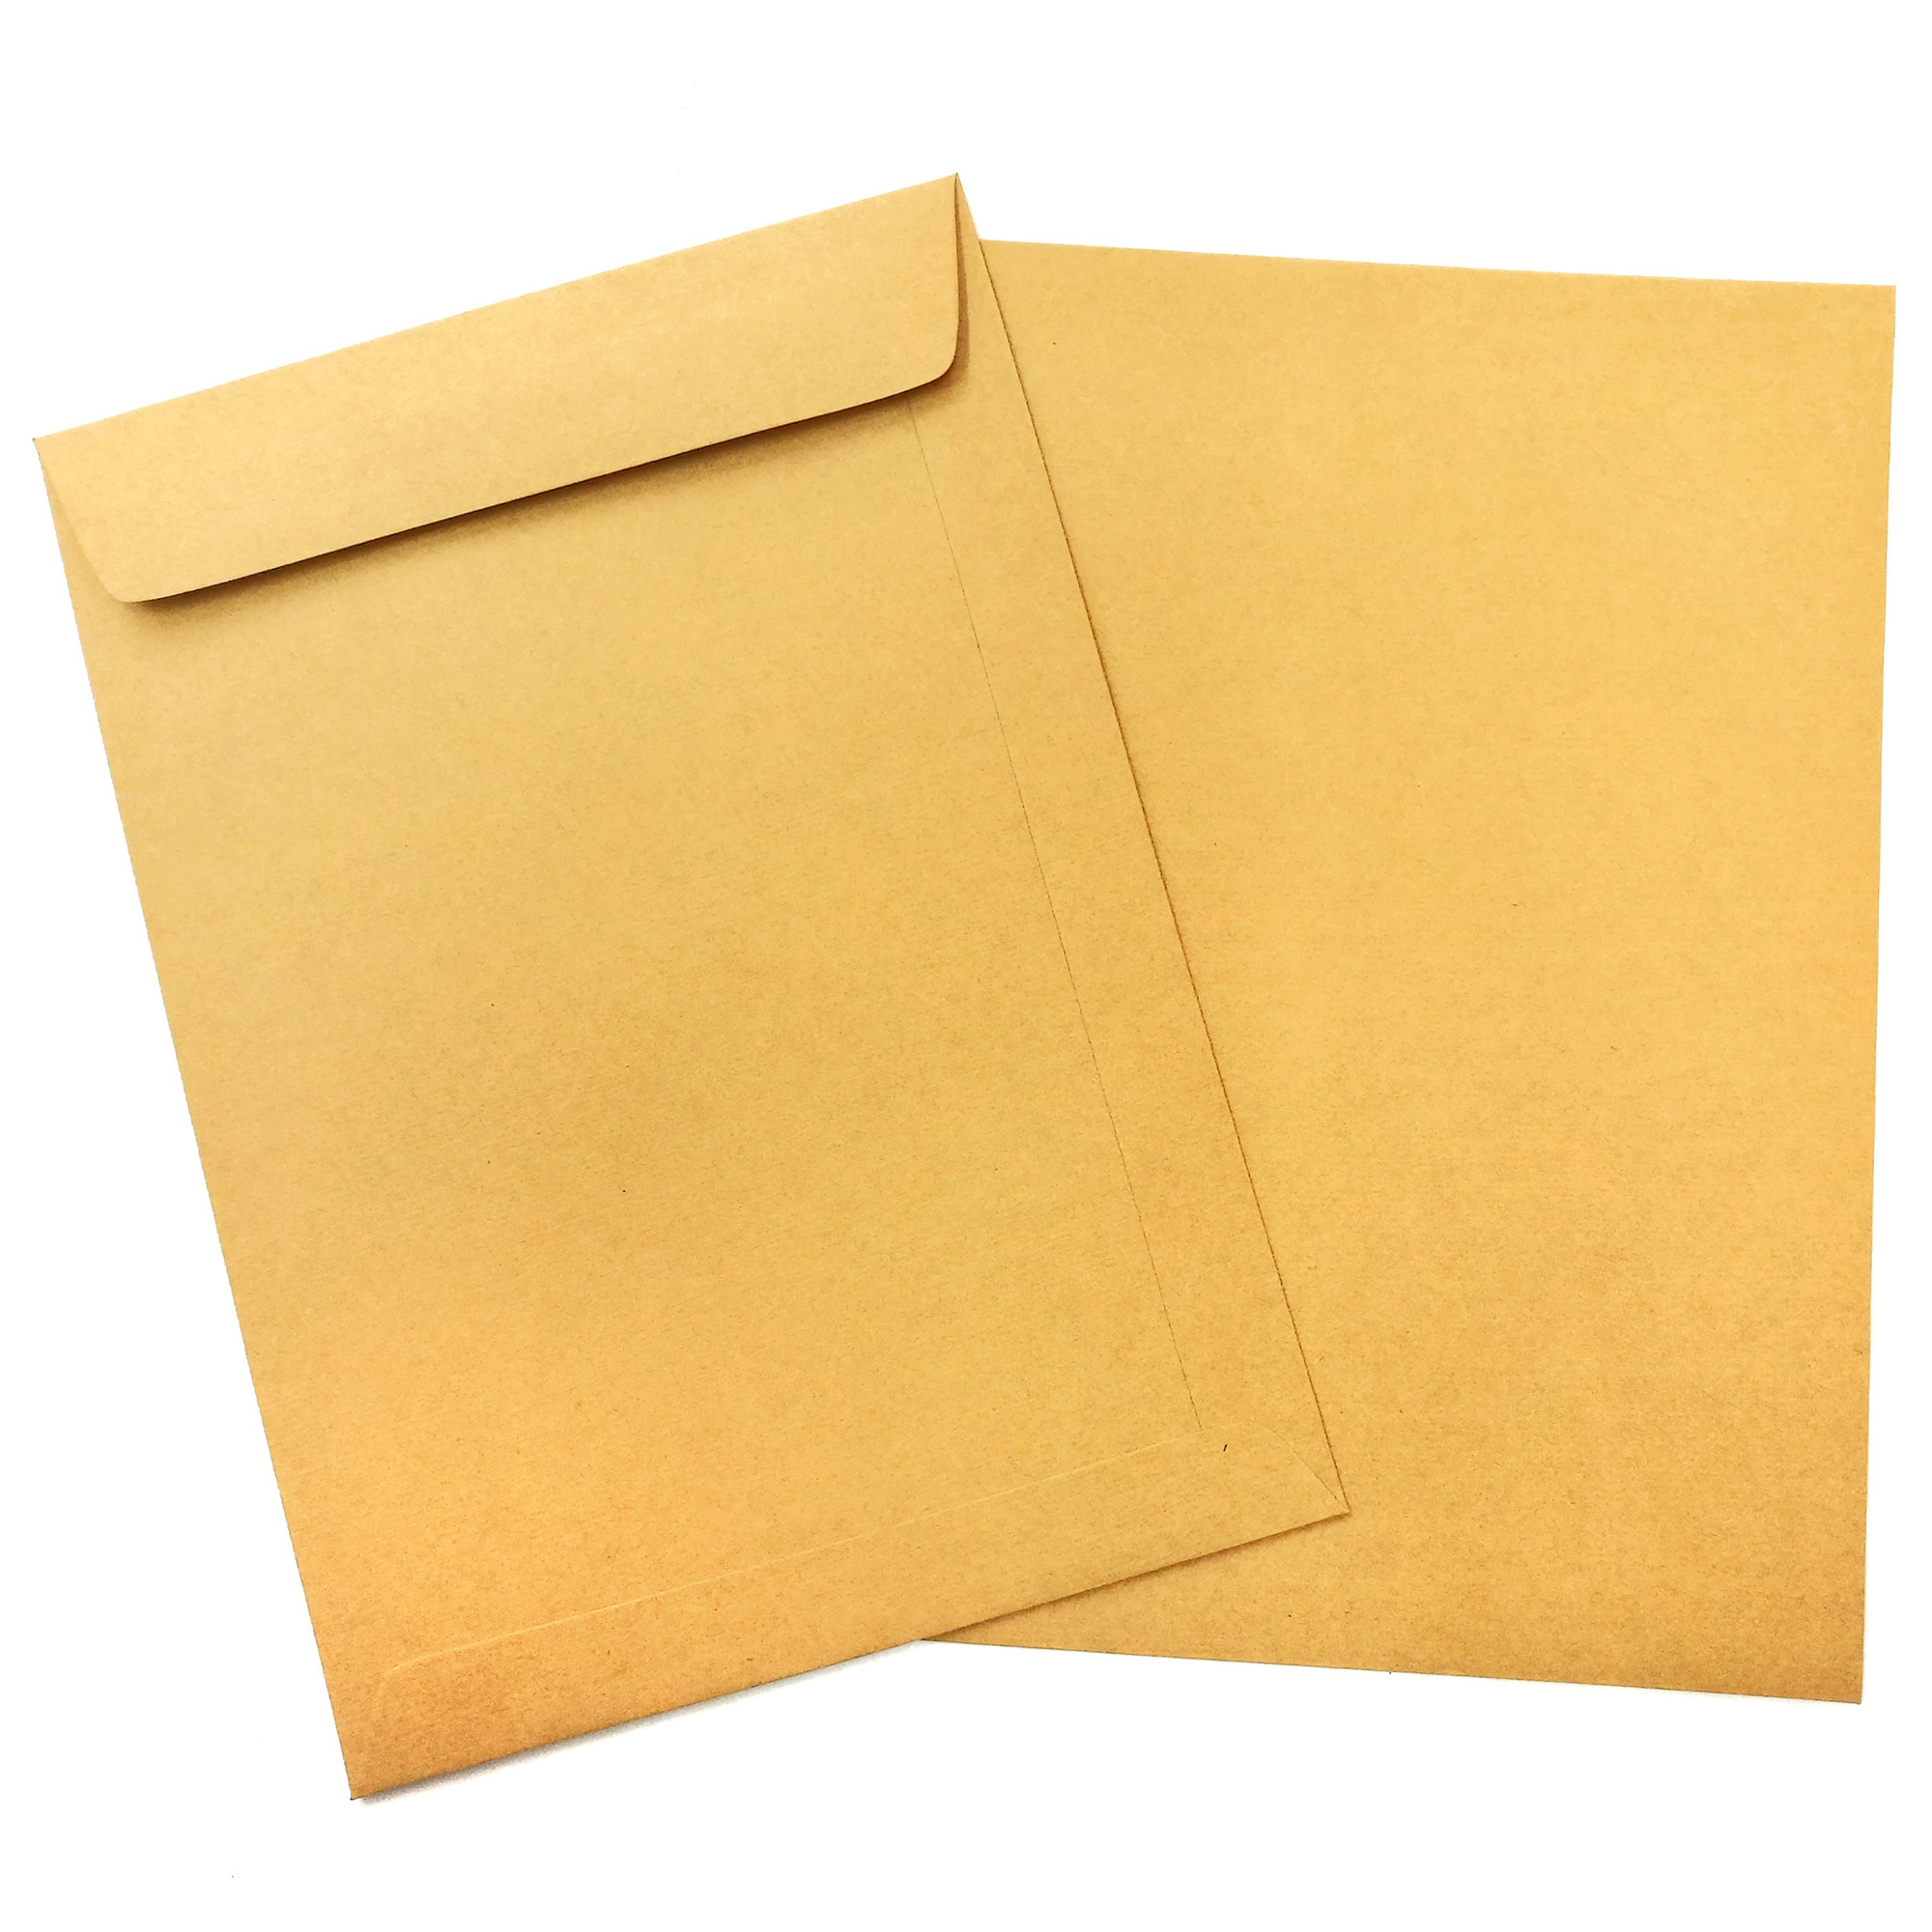 Two envelopes made with Domtar Brown Kraft Envelope paper